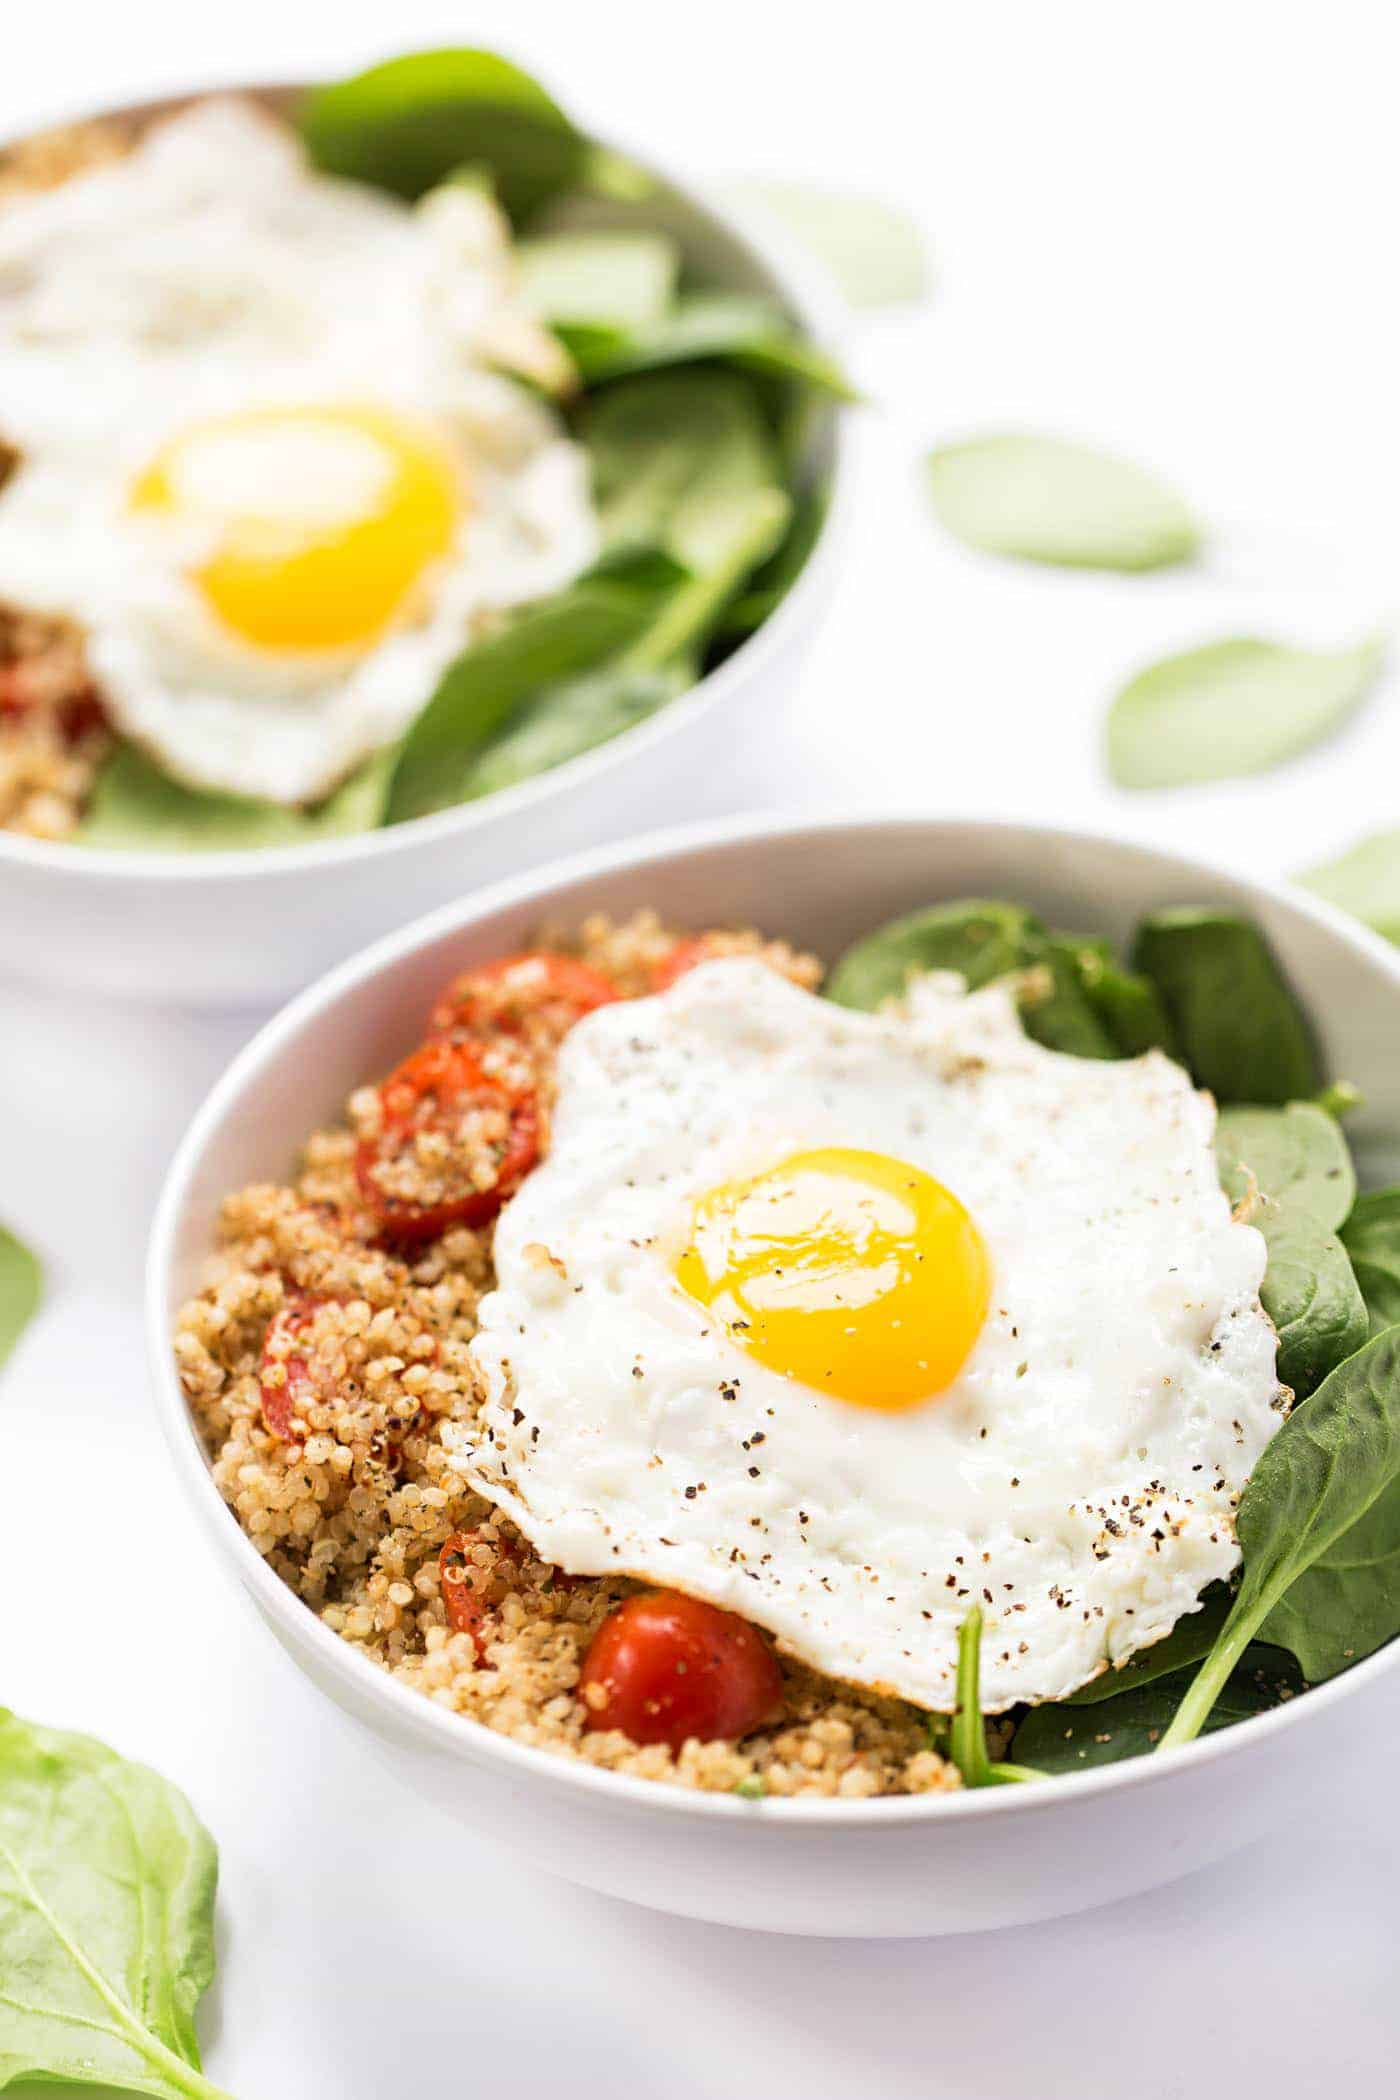 Savory Breakfast Quinoa Bowls with spinach, tomatoes and fried eggs on top!